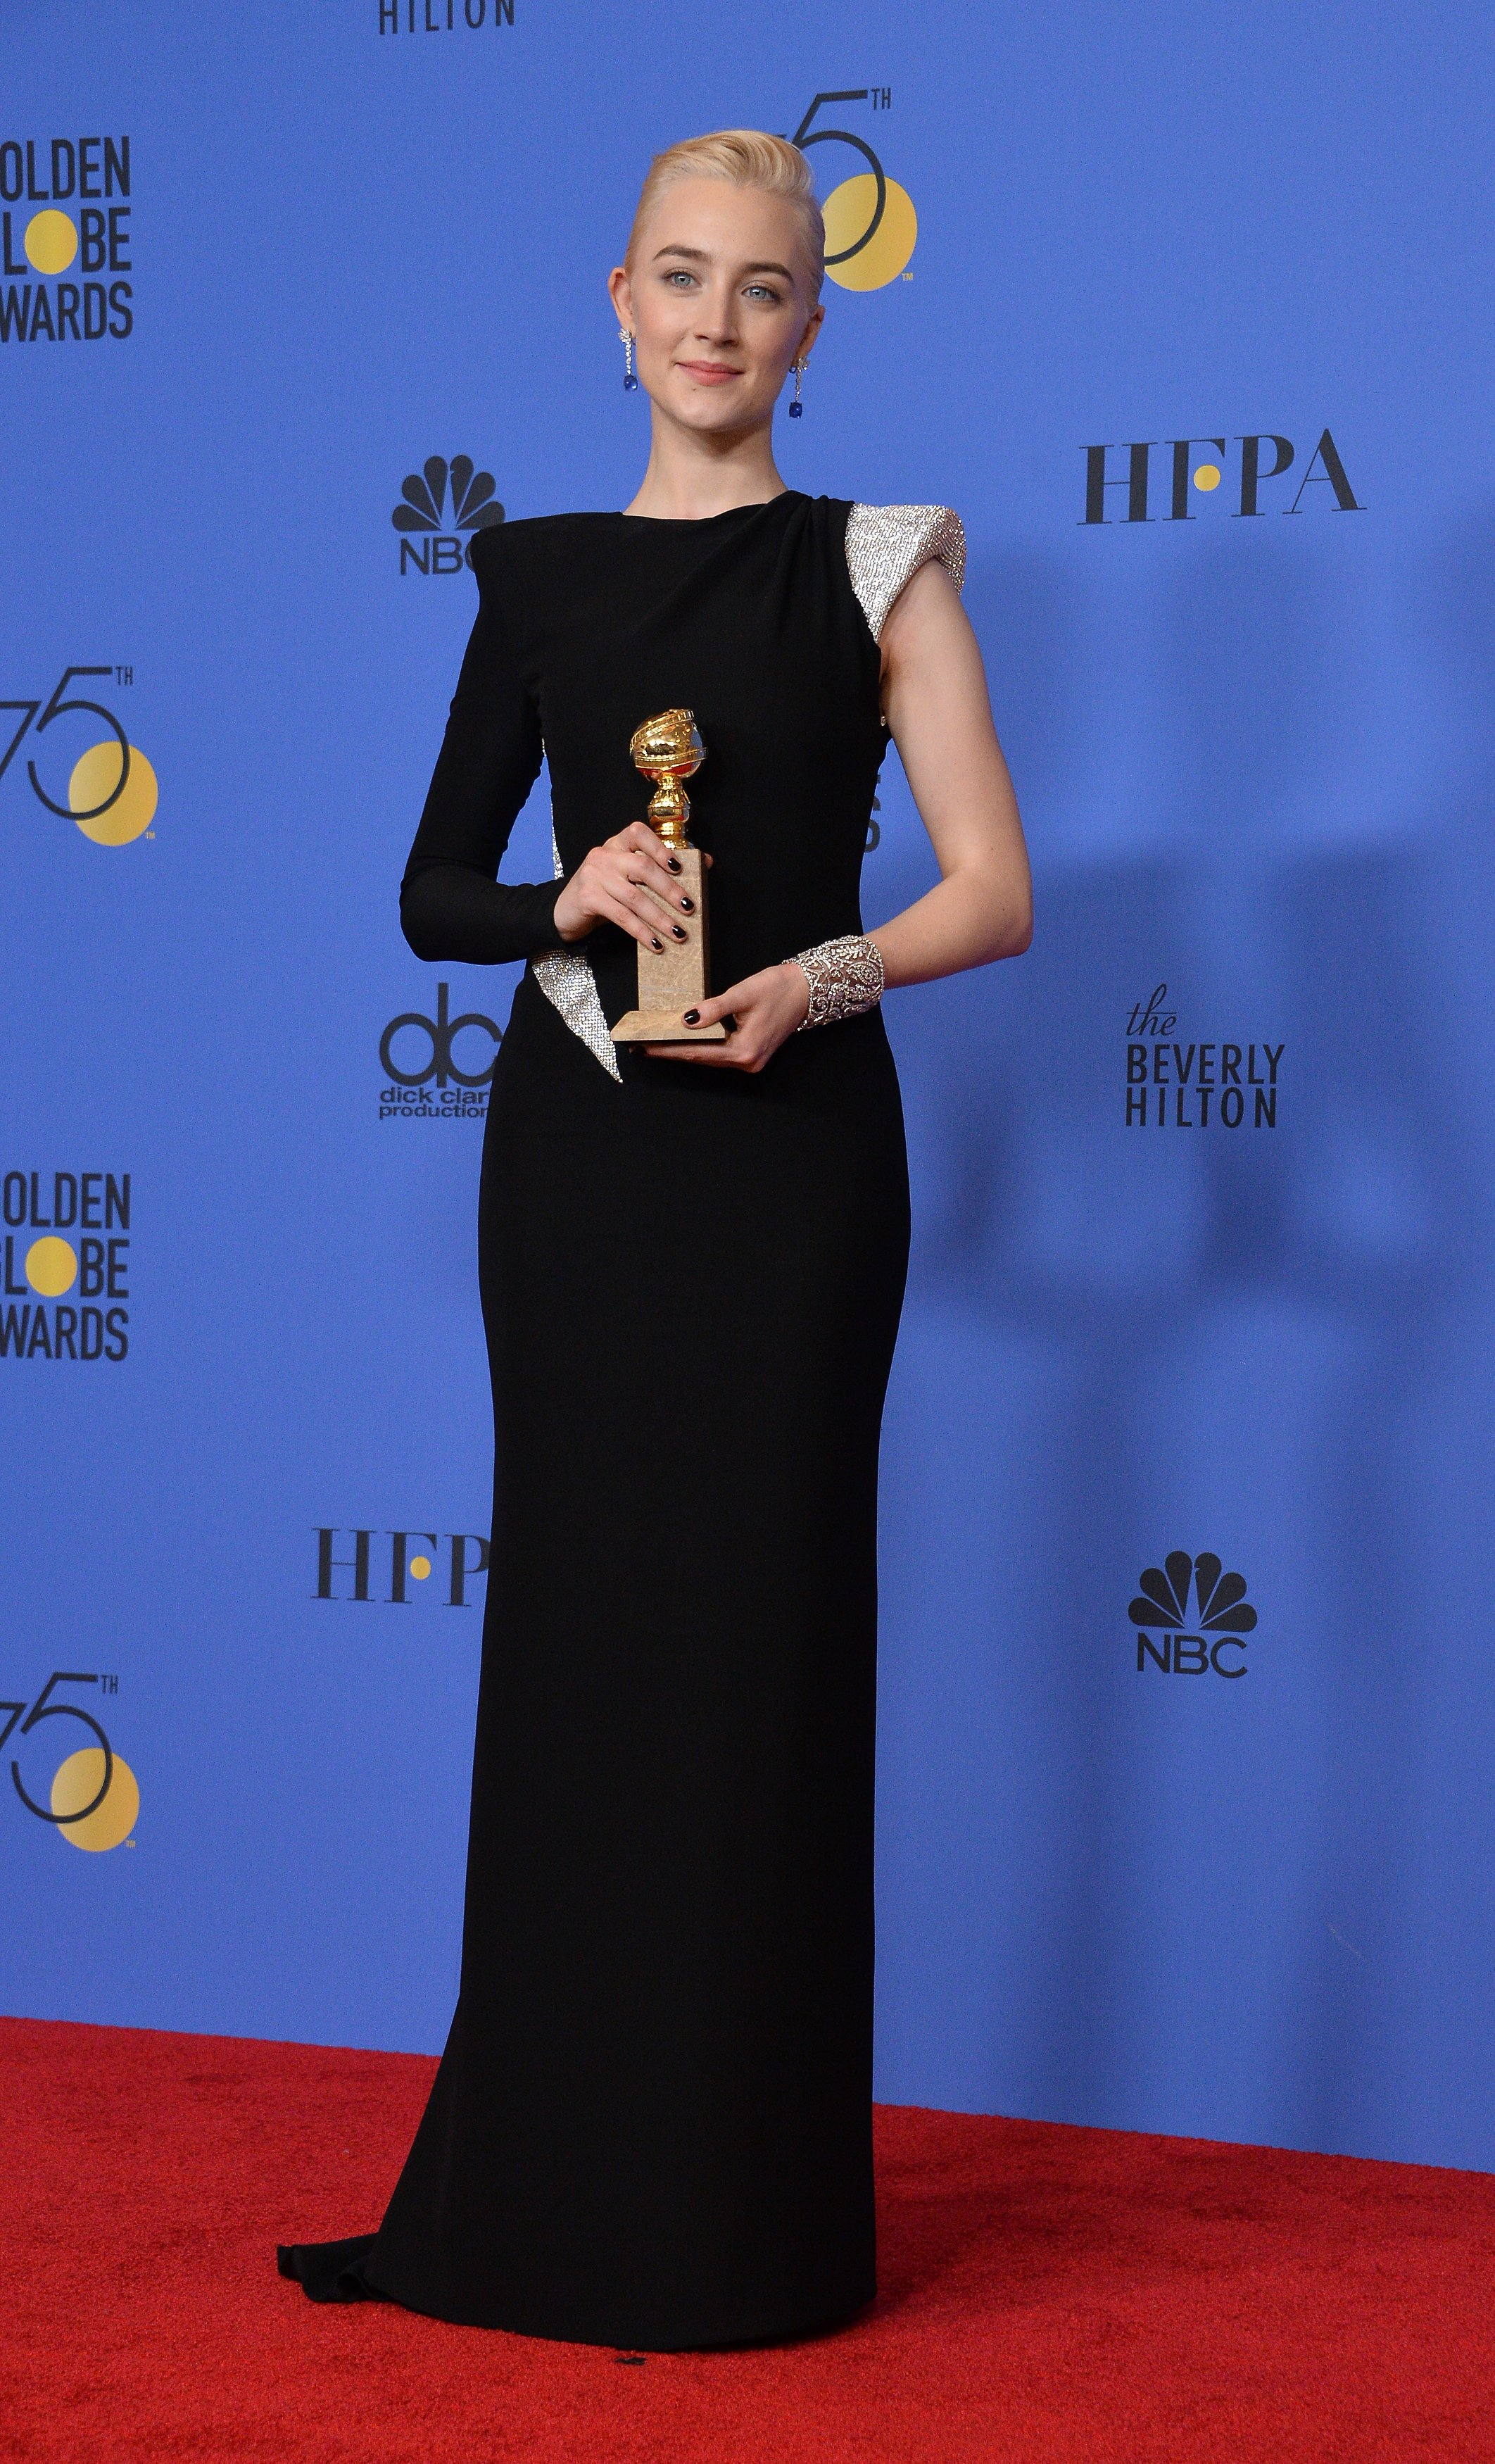 Actor Saoirse Ronan appears backstage after winning the award for Best Performance by an Actress in a Motion Picture - Musical or Comedy for 'Lady Bird' during the 75th annual Golden Globe Awards at the Beverly Hilton Hotel in Beverly Hills, California on January 7, 2018. Photo by /UPI, Image: 359518859, License: Rights-managed, Restrictions: , Model Release: no, Credit line: Profimedia, UPI